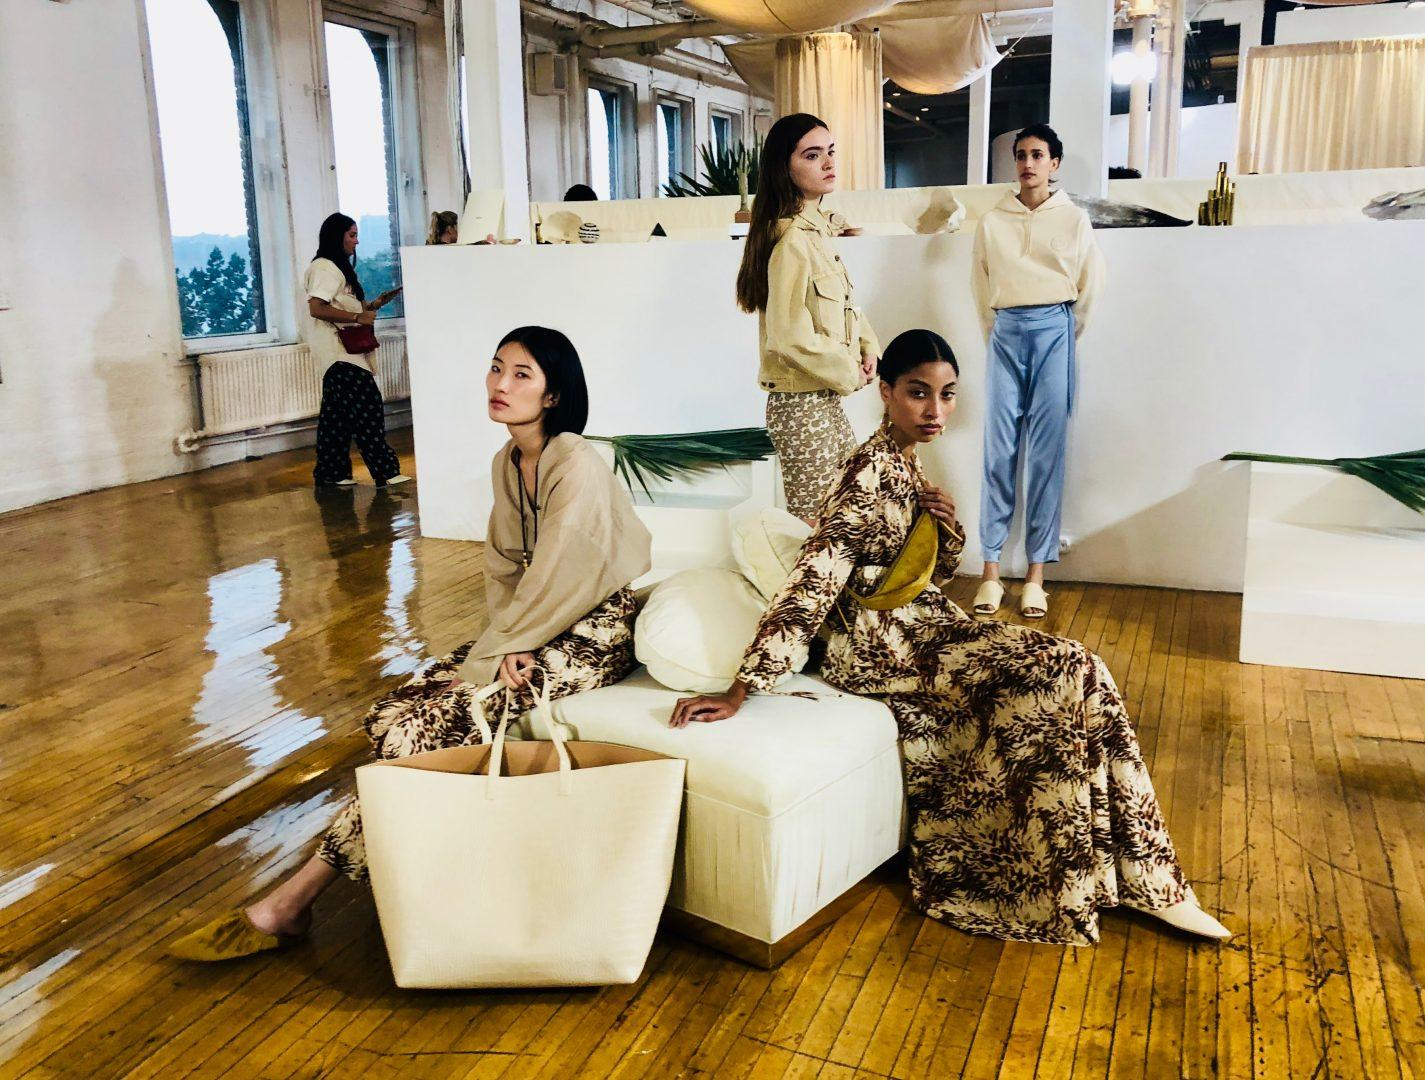 Students at Fordham College at Lincoln Center participated in NYFW as models, editors, influencers, and assistants. (COURTESY OF LAREINA SUN).